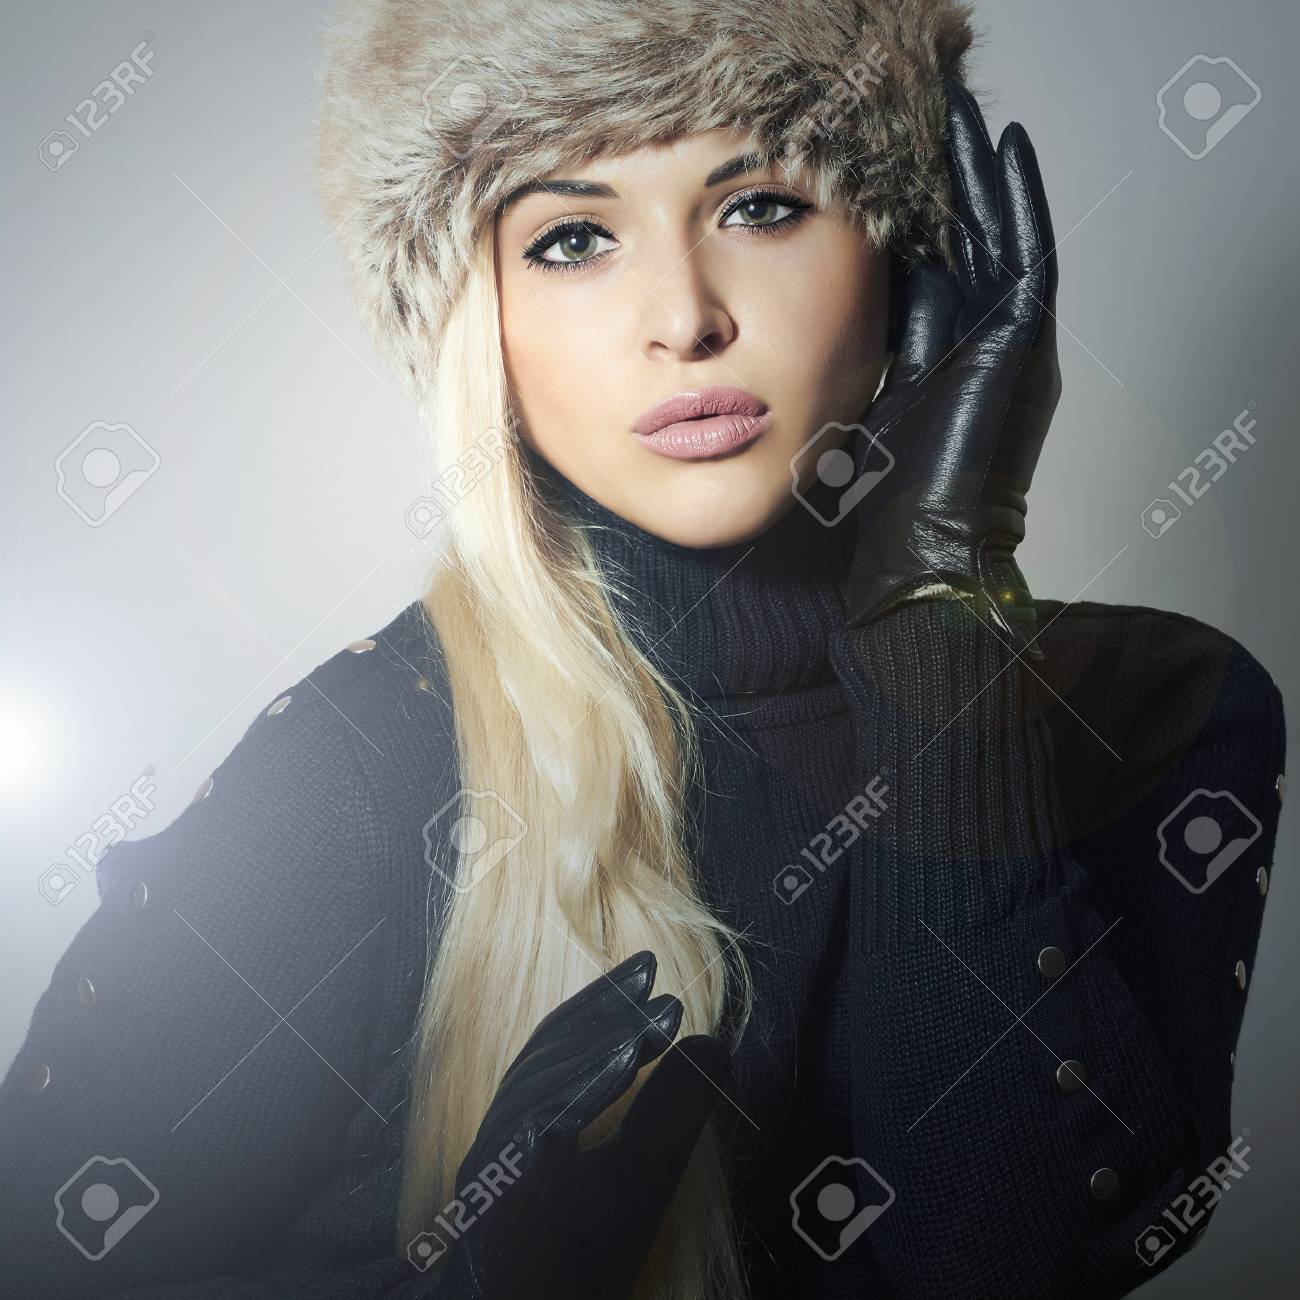 new concept official official shop Beautiful Fashion Girl in Fur Hat. Beauty Blond Woman in Leather..